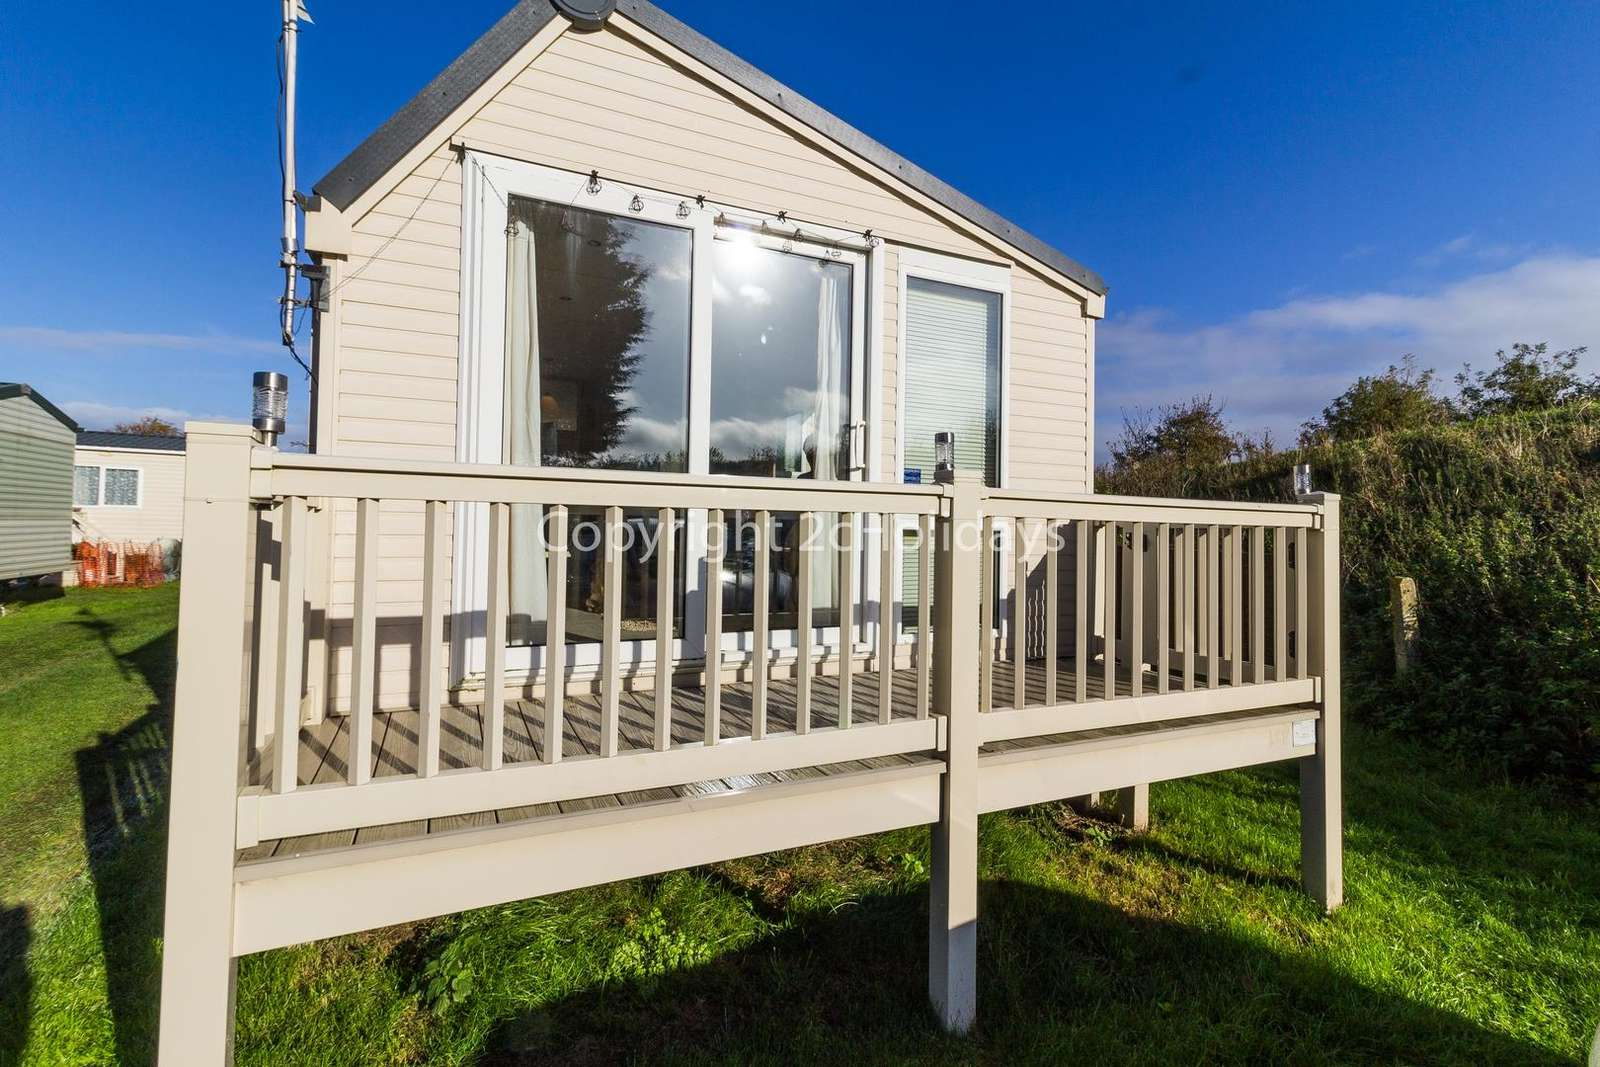 Luxury diamond rated mobile home with parking next to the accommodation